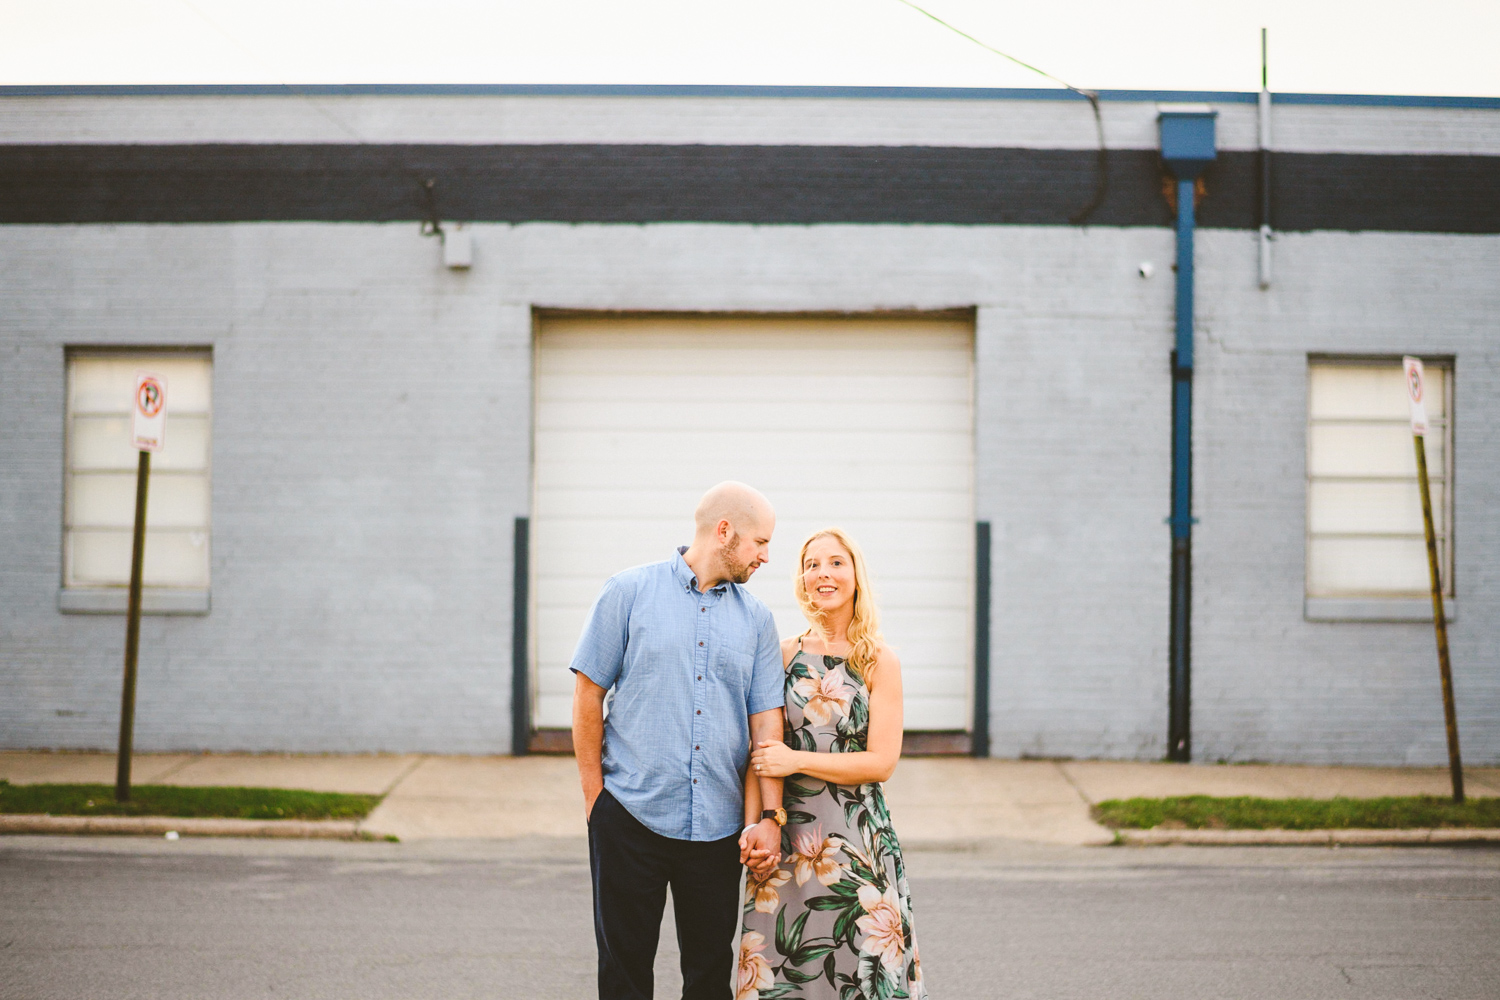 013 - engagement session in scotts addition richmond virginia.jpg